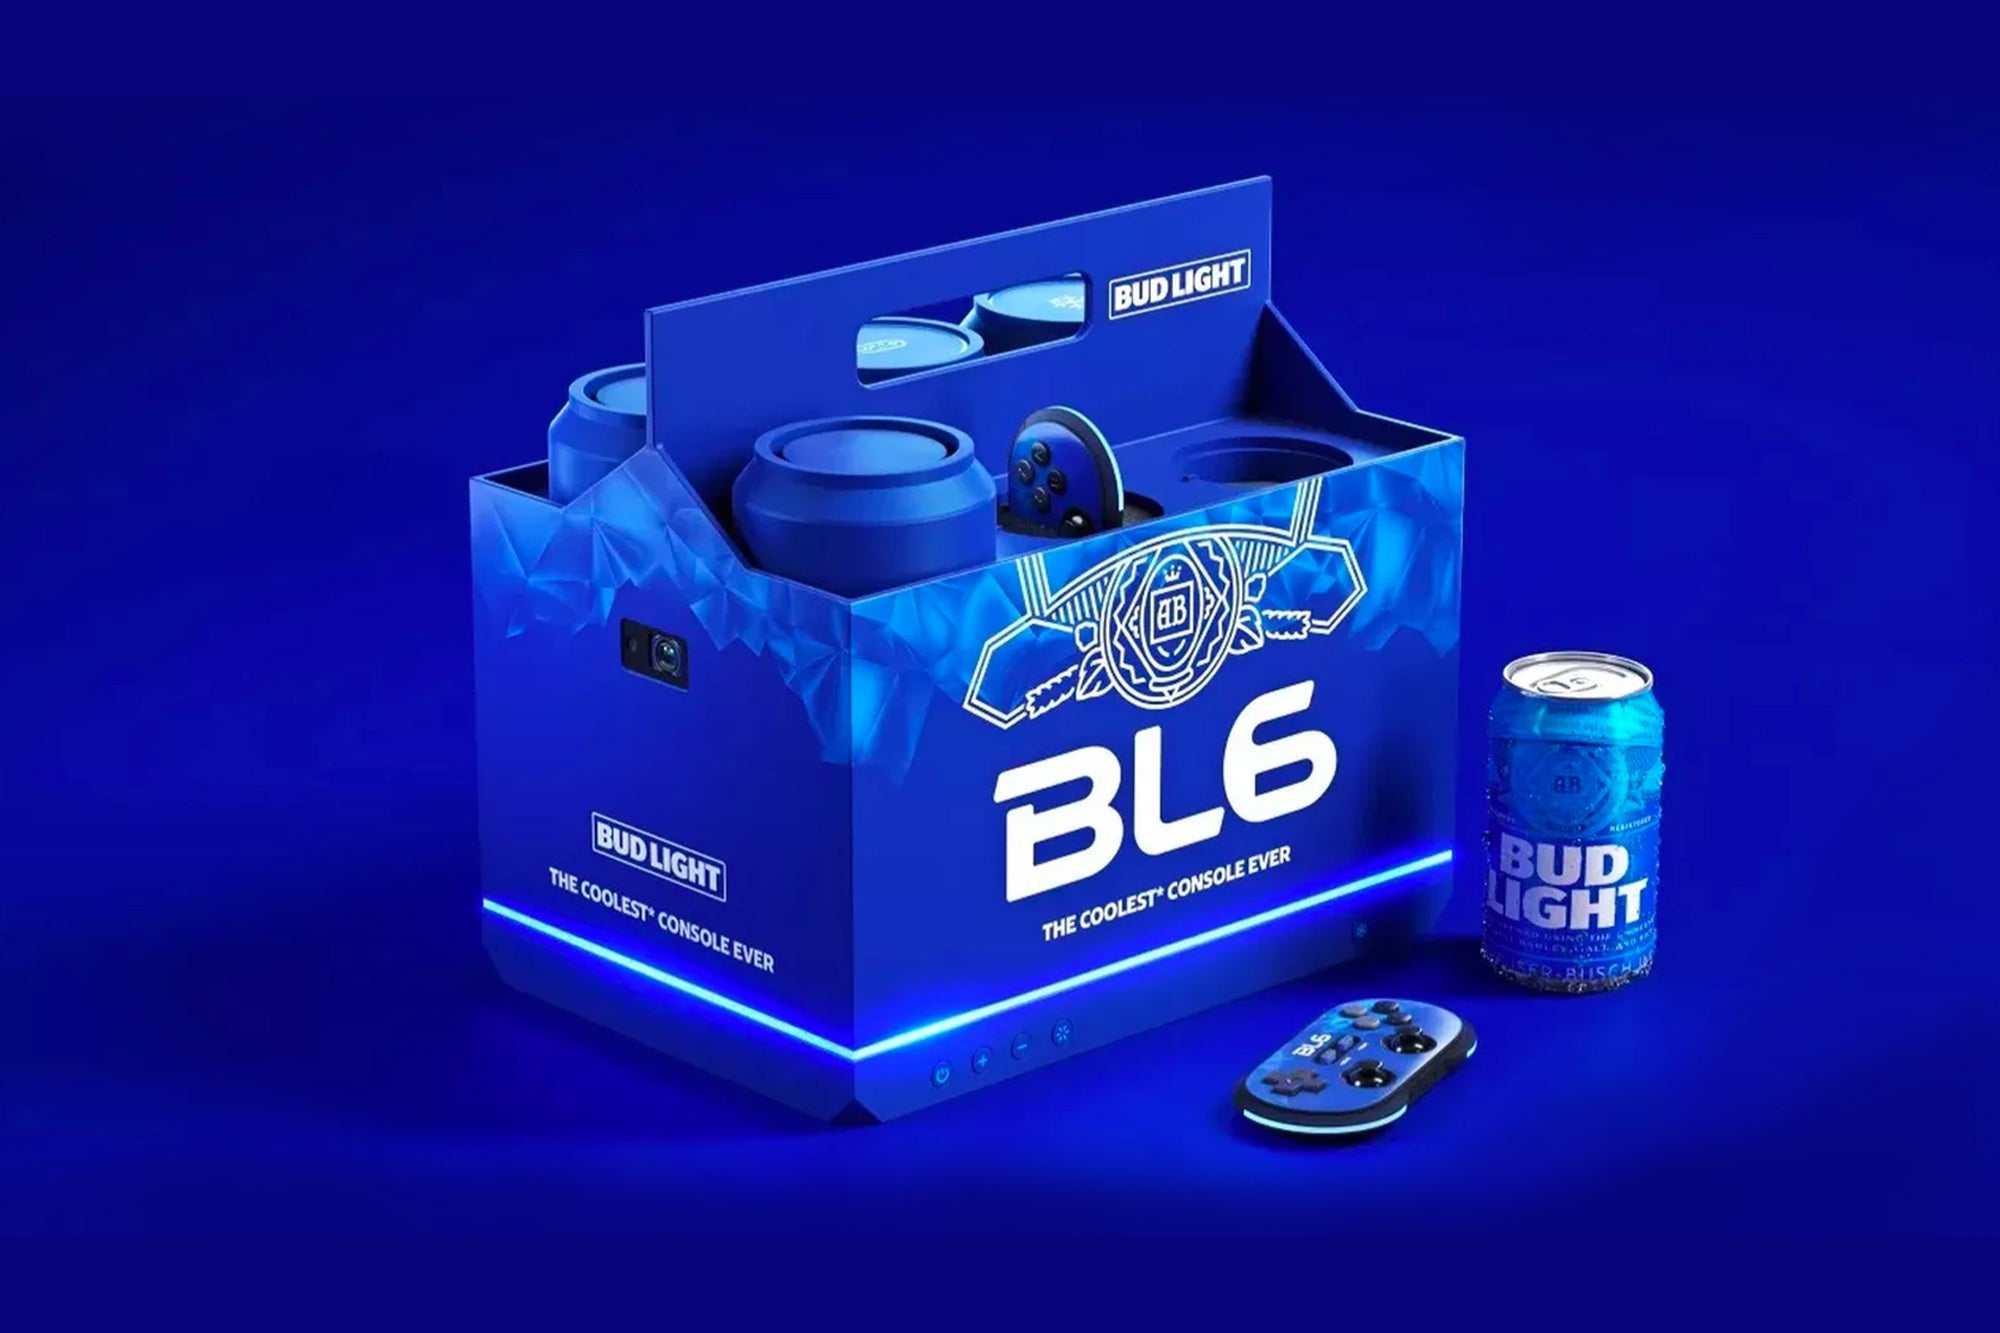 Meet the BL6, Bud Light's Game Console